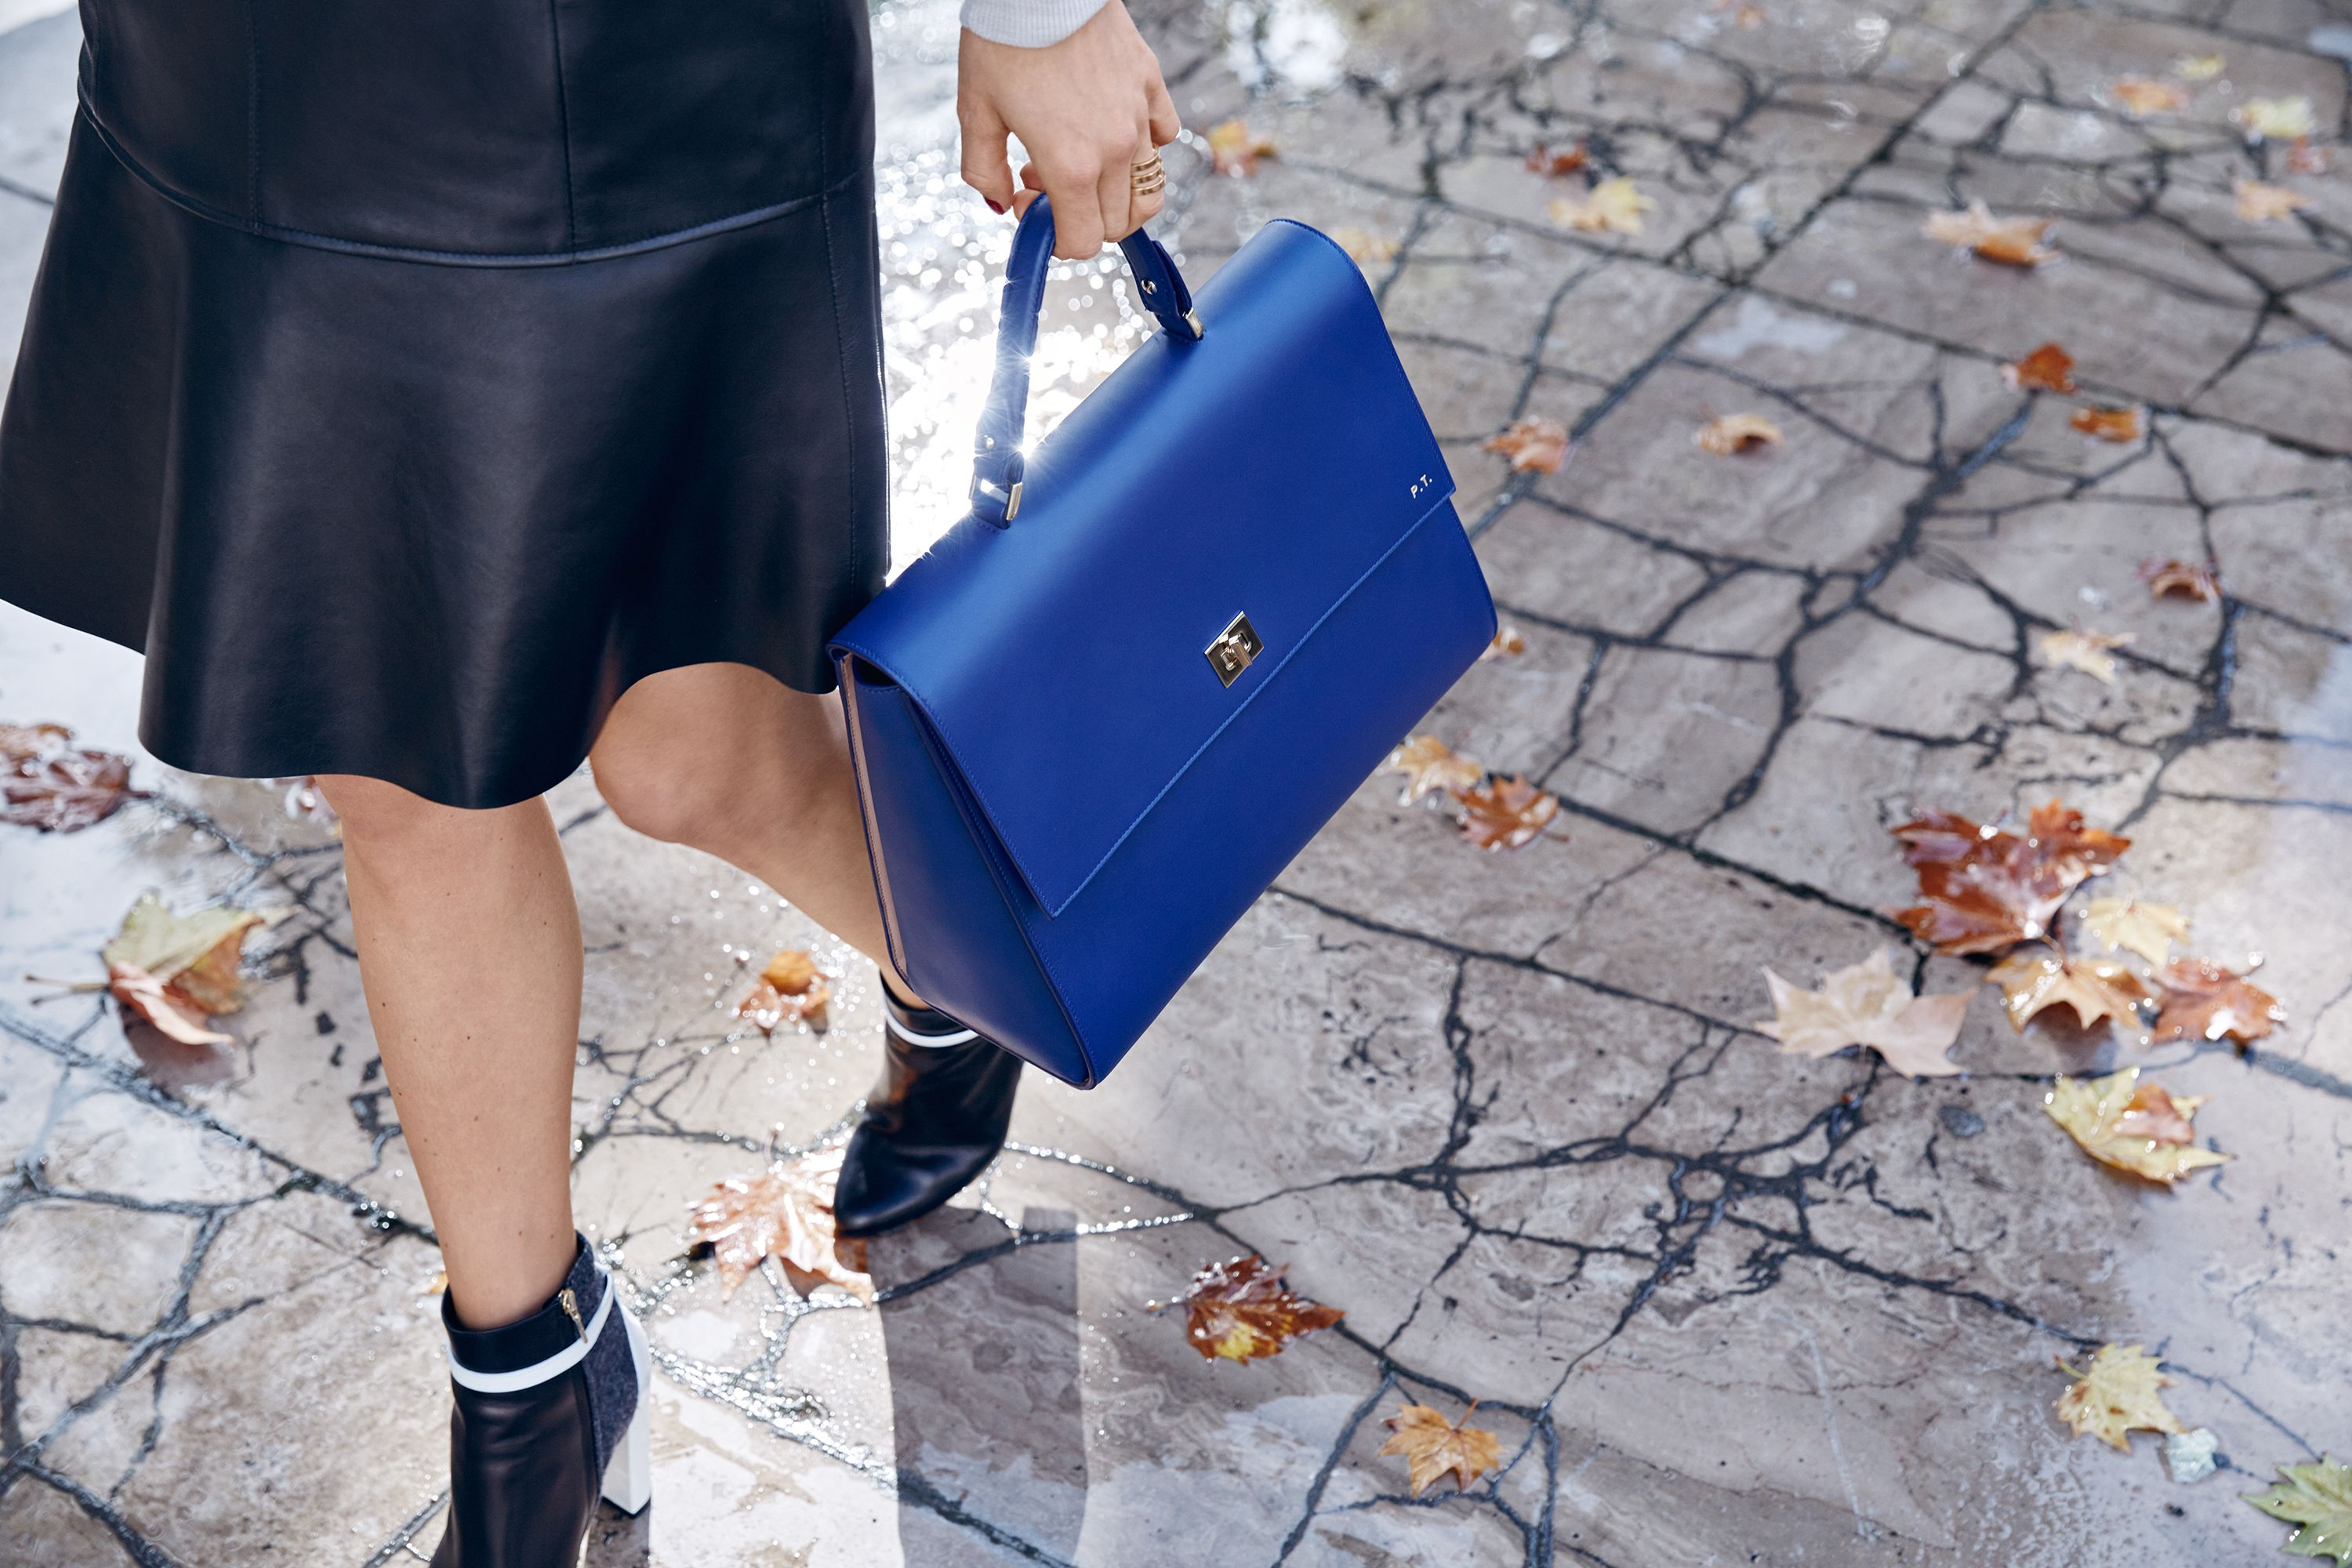 The #bossbespokebag in ink blue, personalised for Pernille Teisbaek #thisisboss